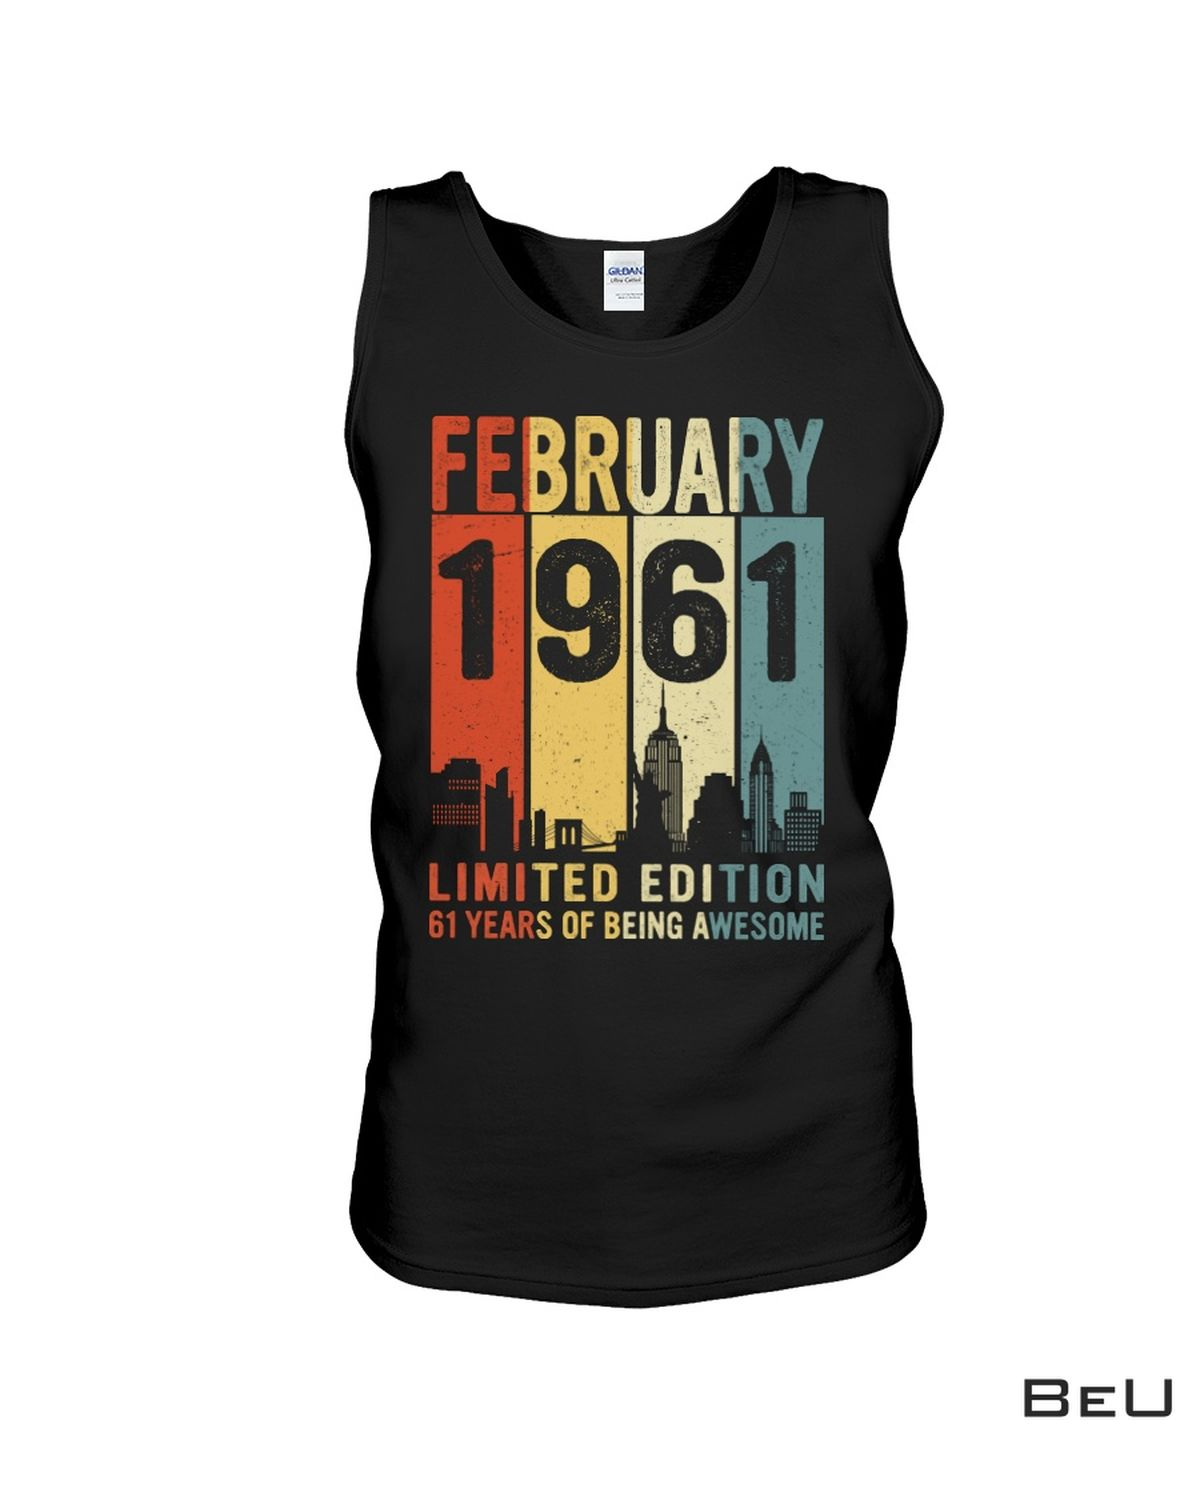 3D February 1961 Limited Edition Shirt